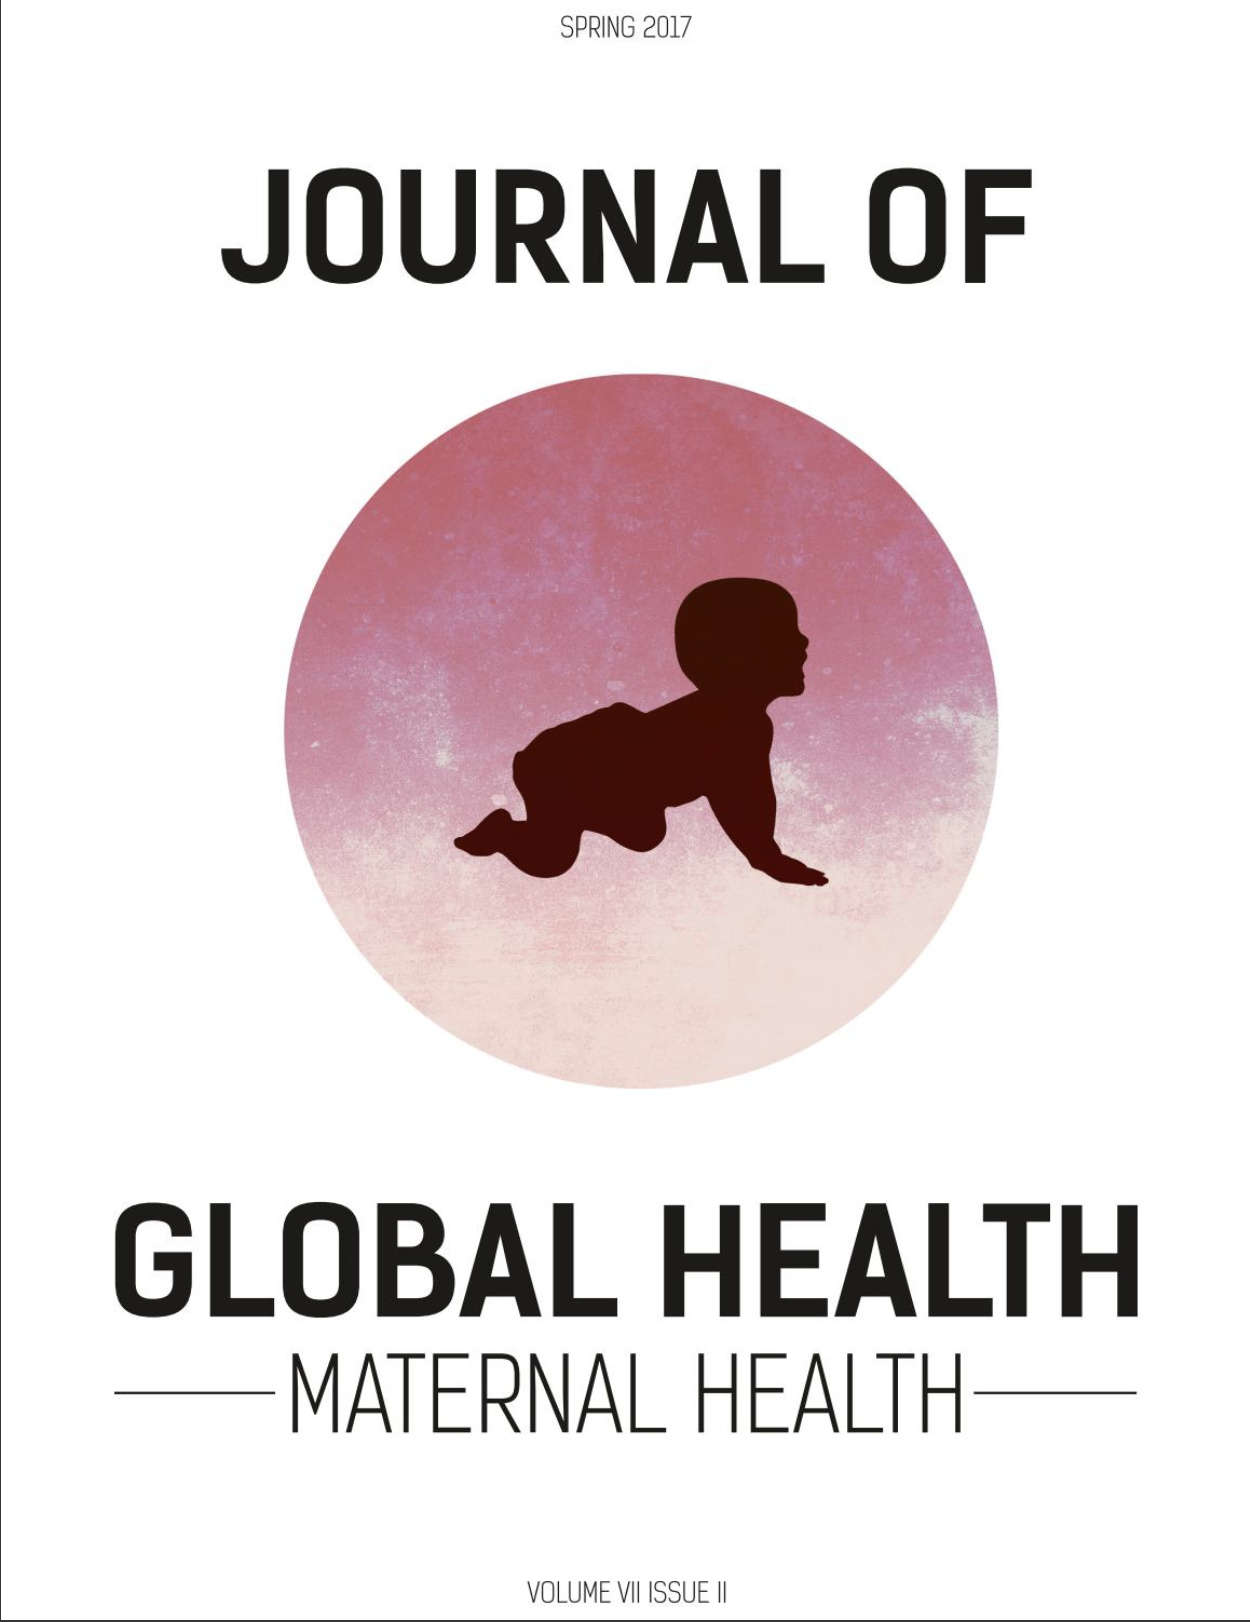 Cover of the Journal of Global Health Spring 2017 Issue